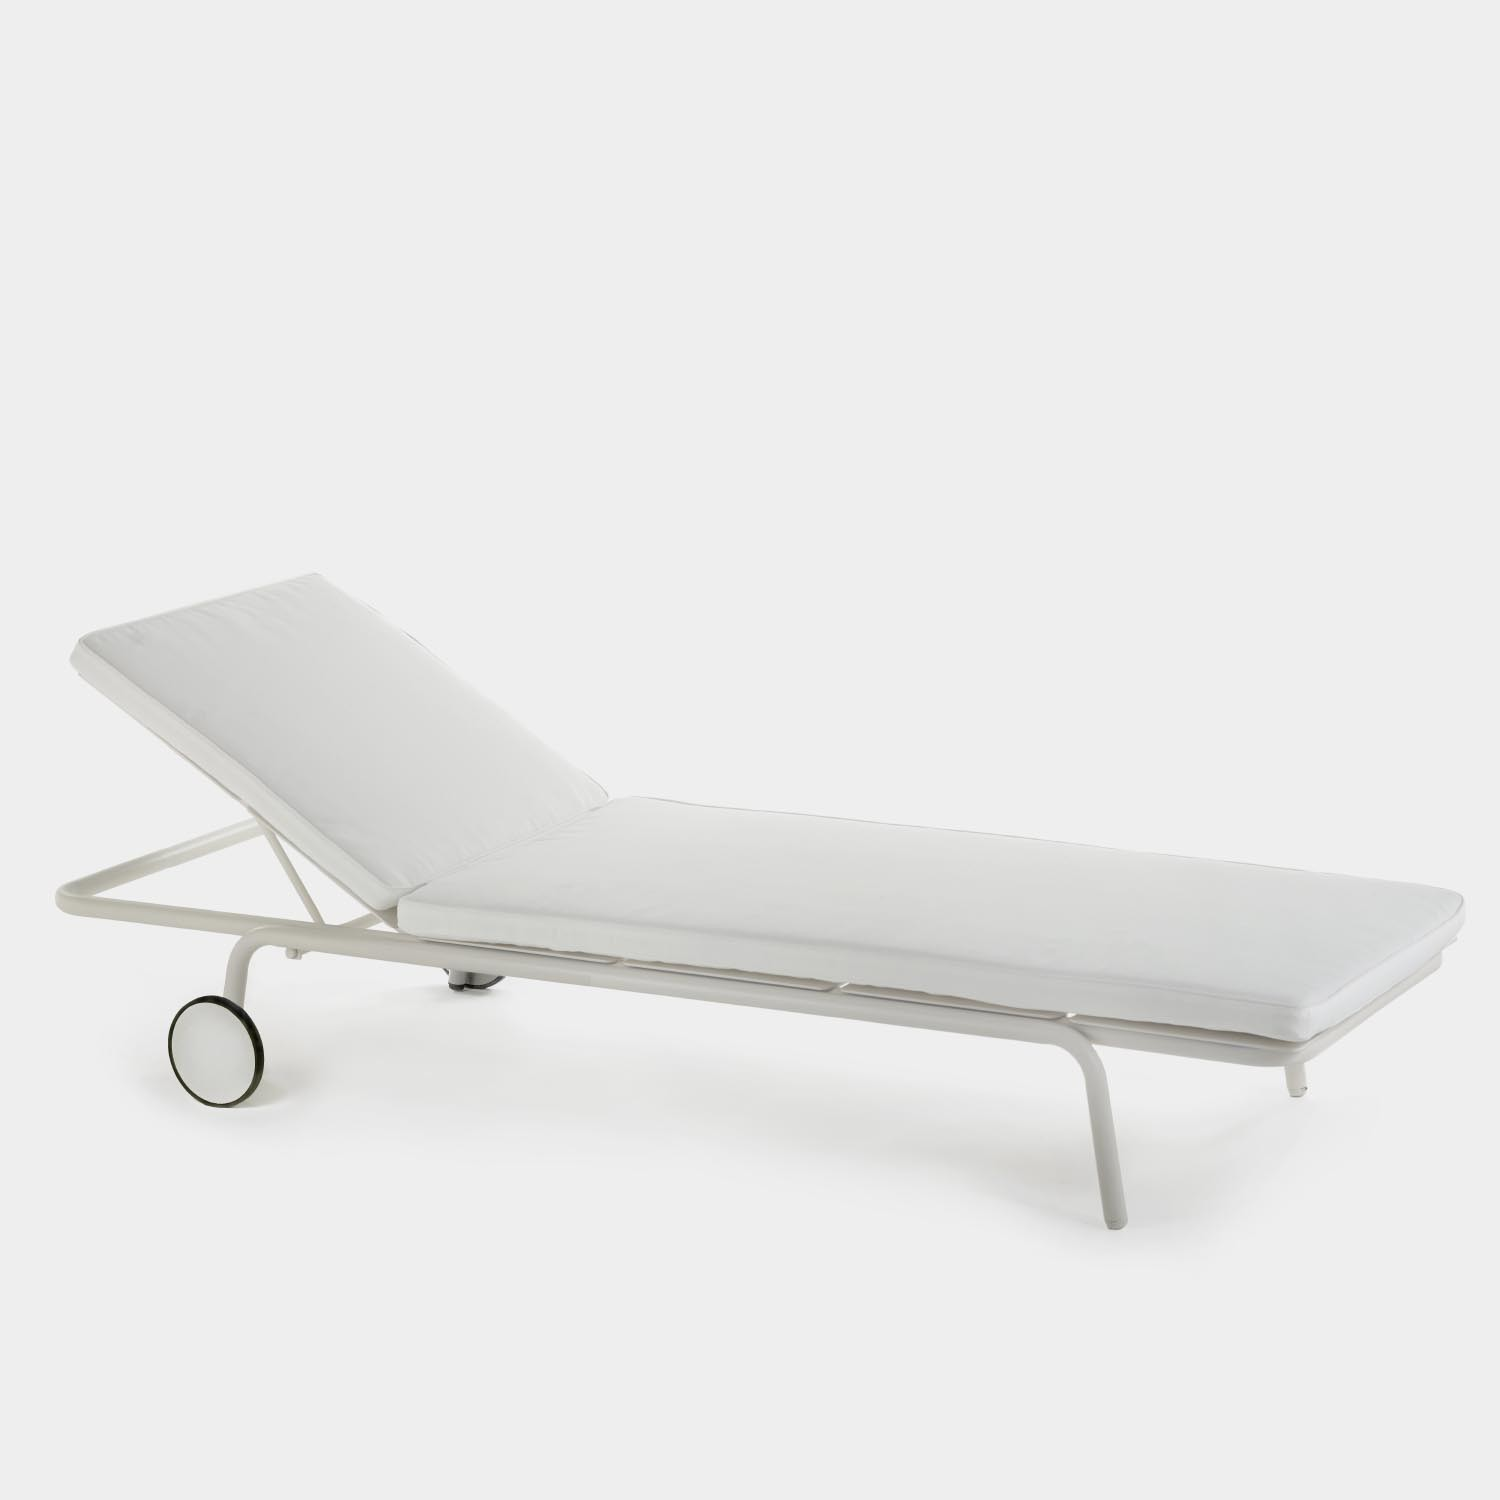 August Sunlounger, Sand, with cushion